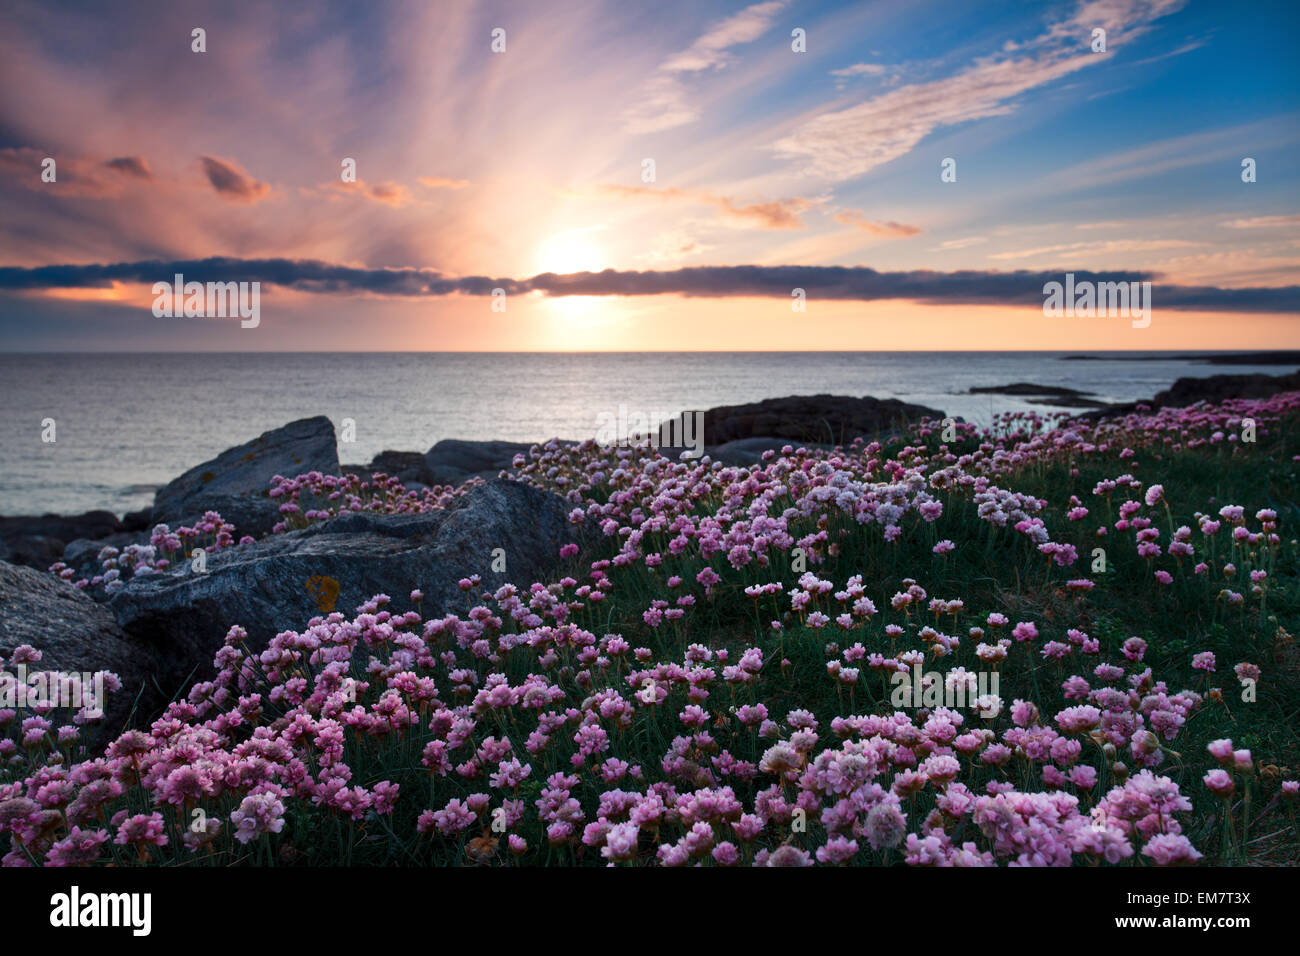 Isle of Barra at sunset, Outer Hebrides, Scotland - Stock Image